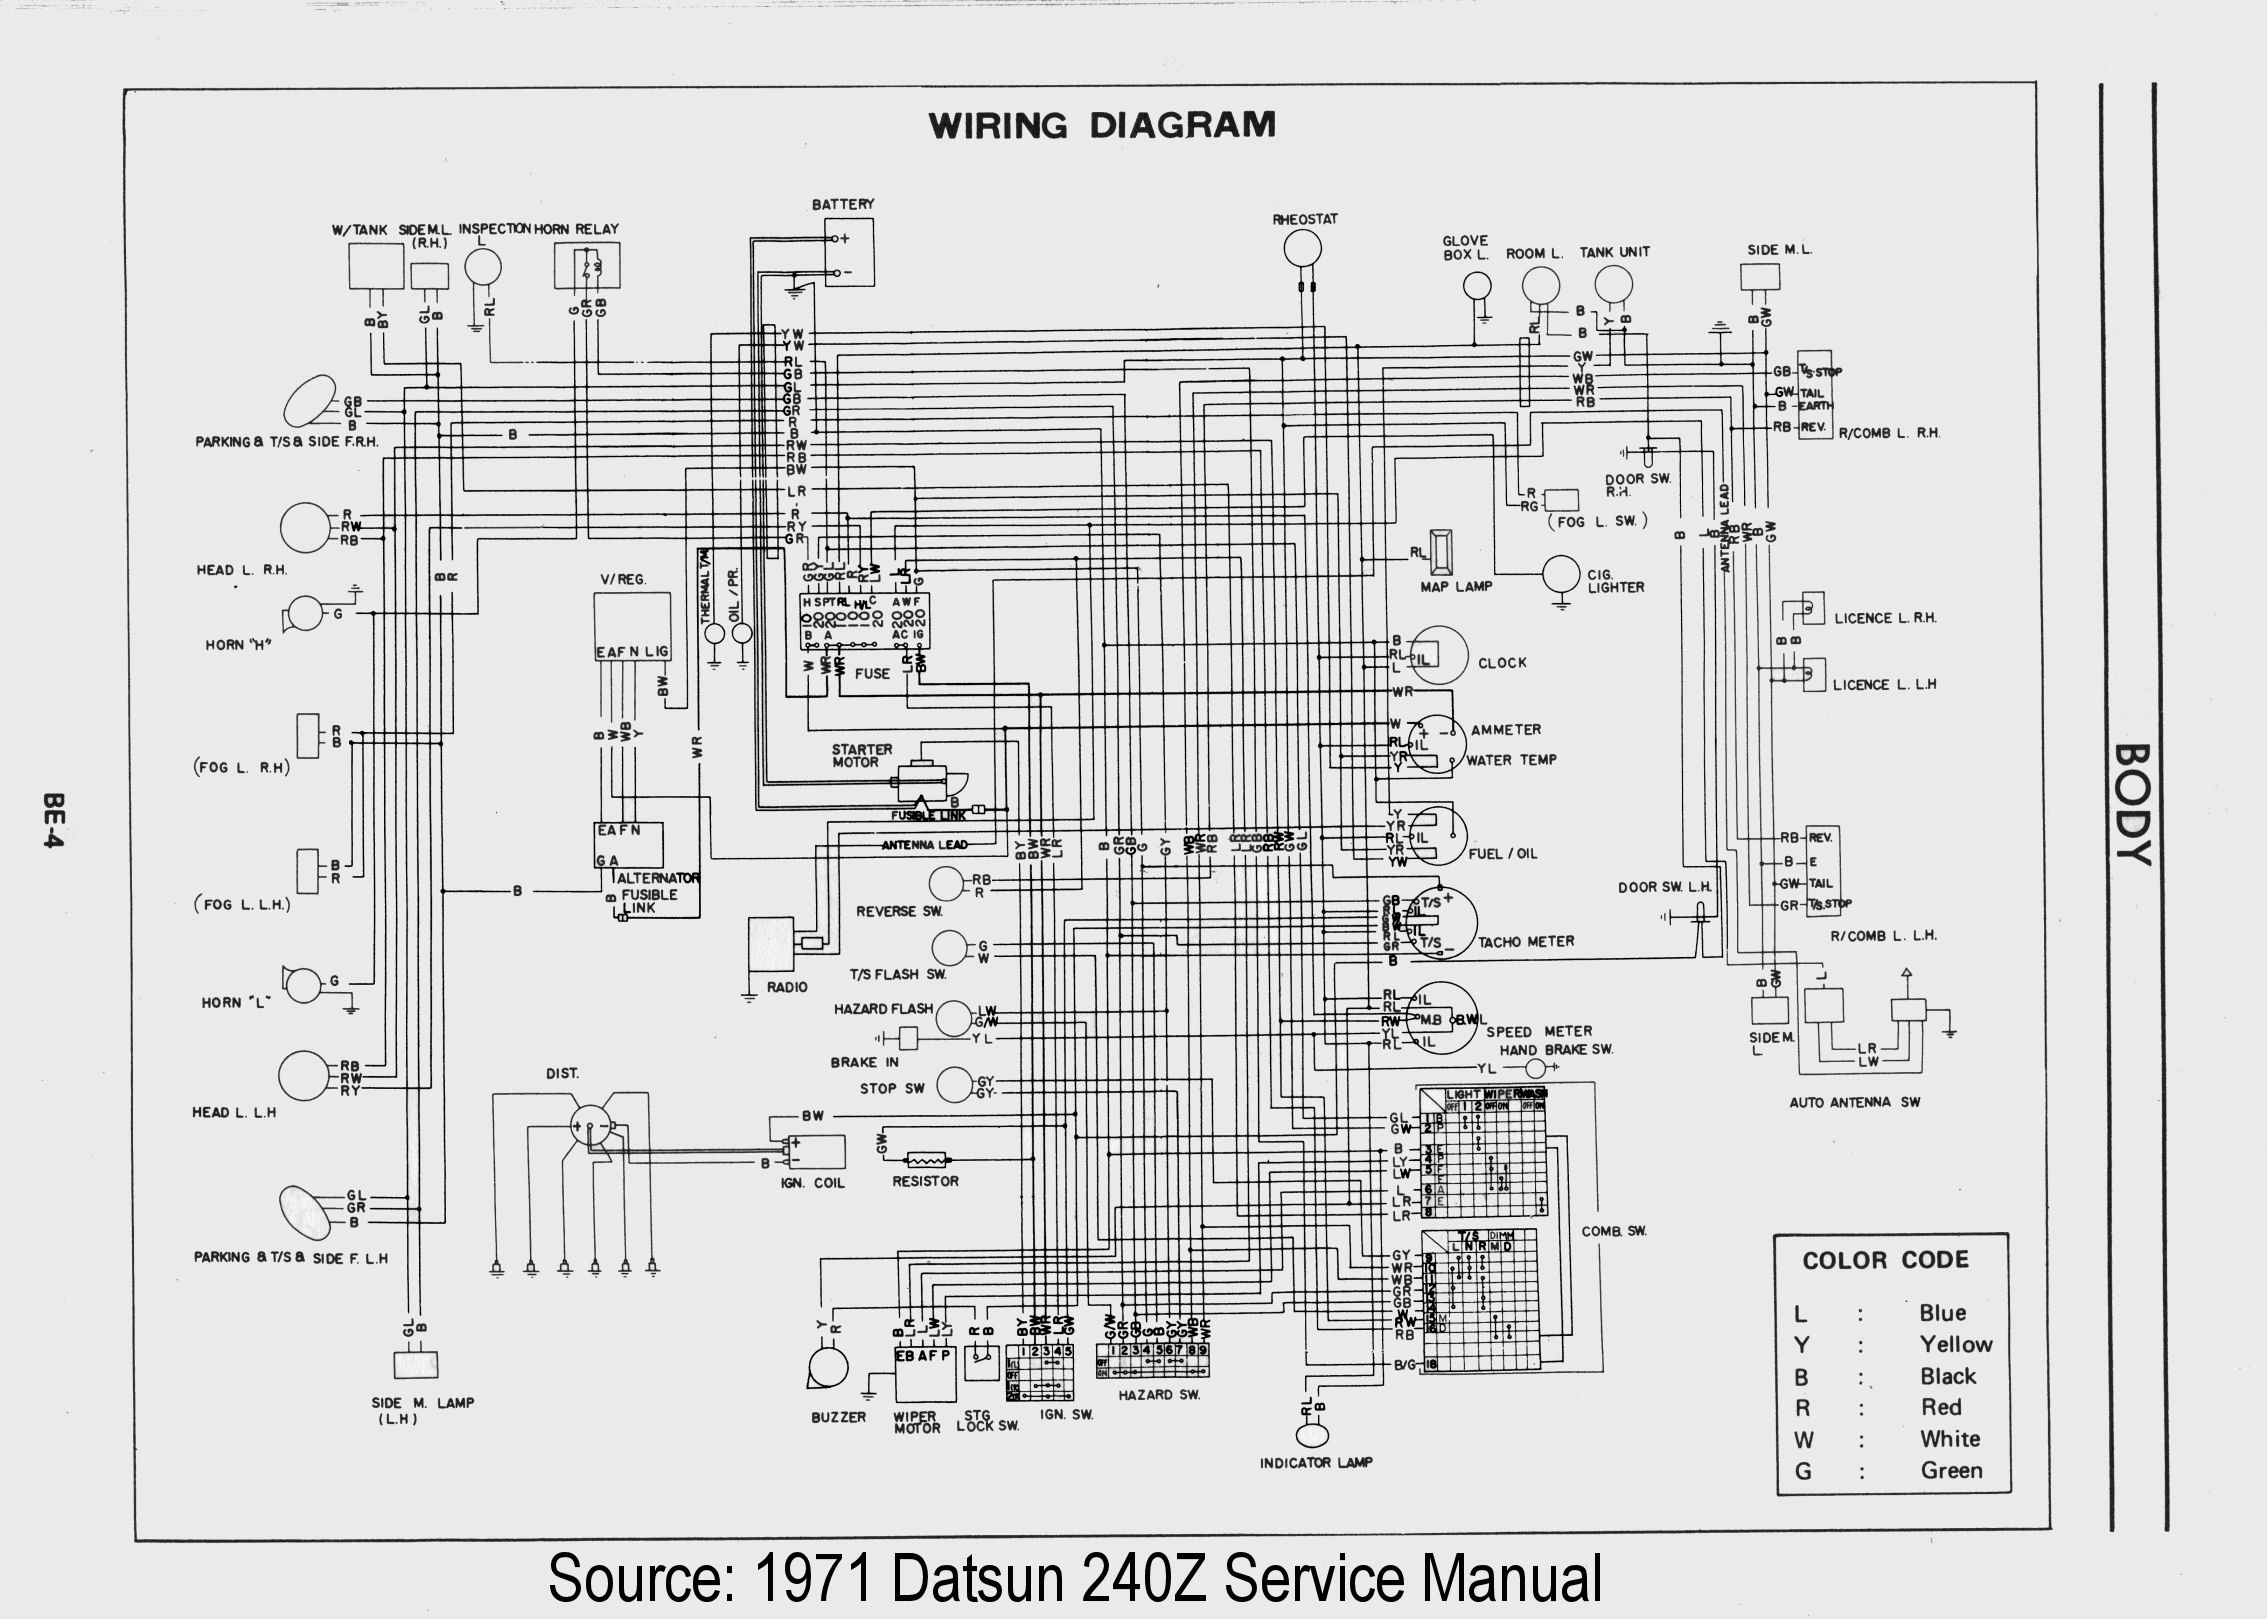 280z Fuse Box Diagram Generic Wiring Troubleshooting Checklist